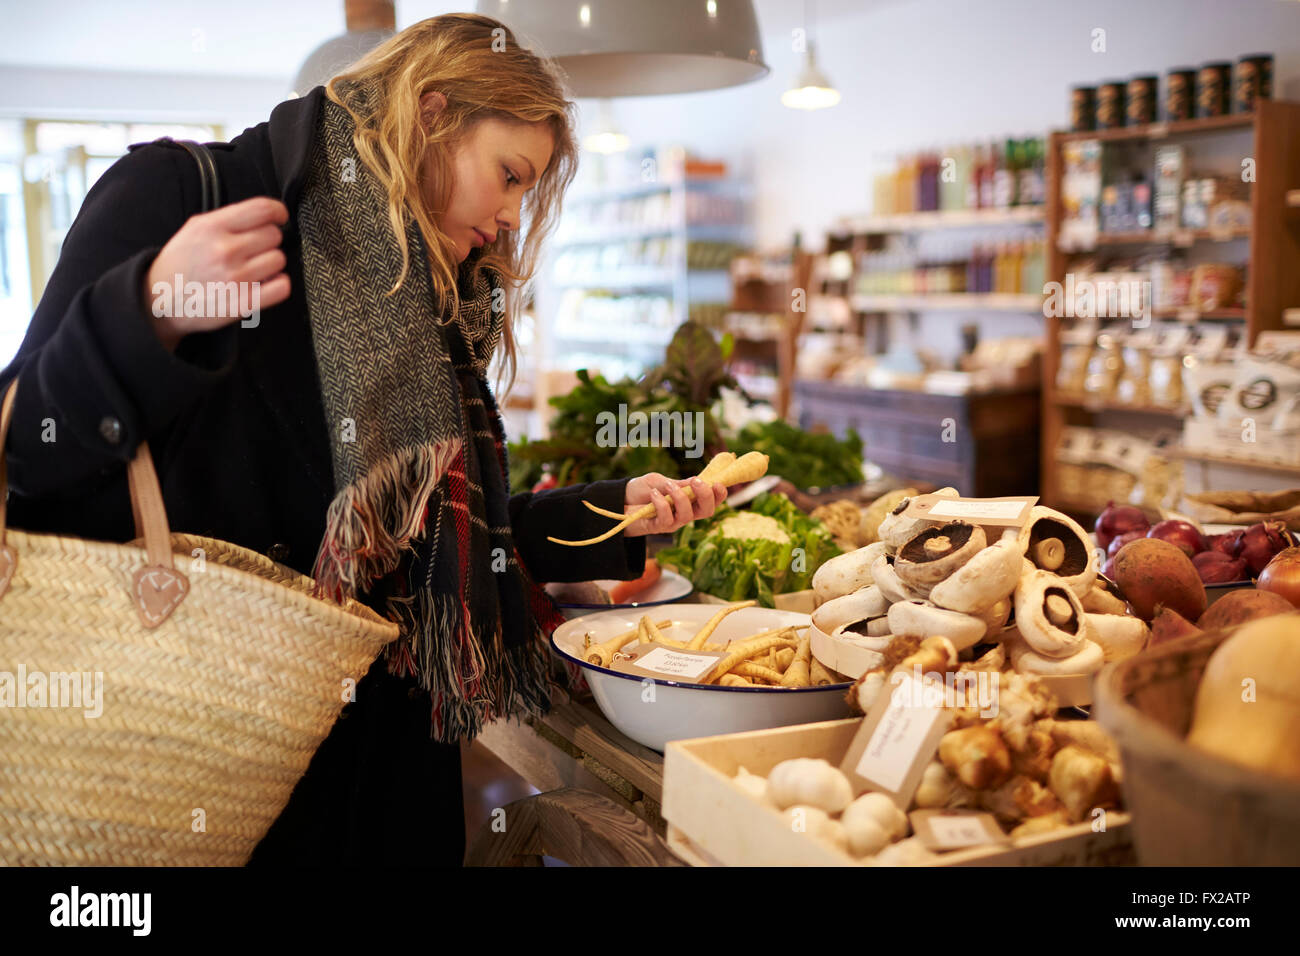 Woman Shopping For Organic Produce In Delicatessen - Stock Image